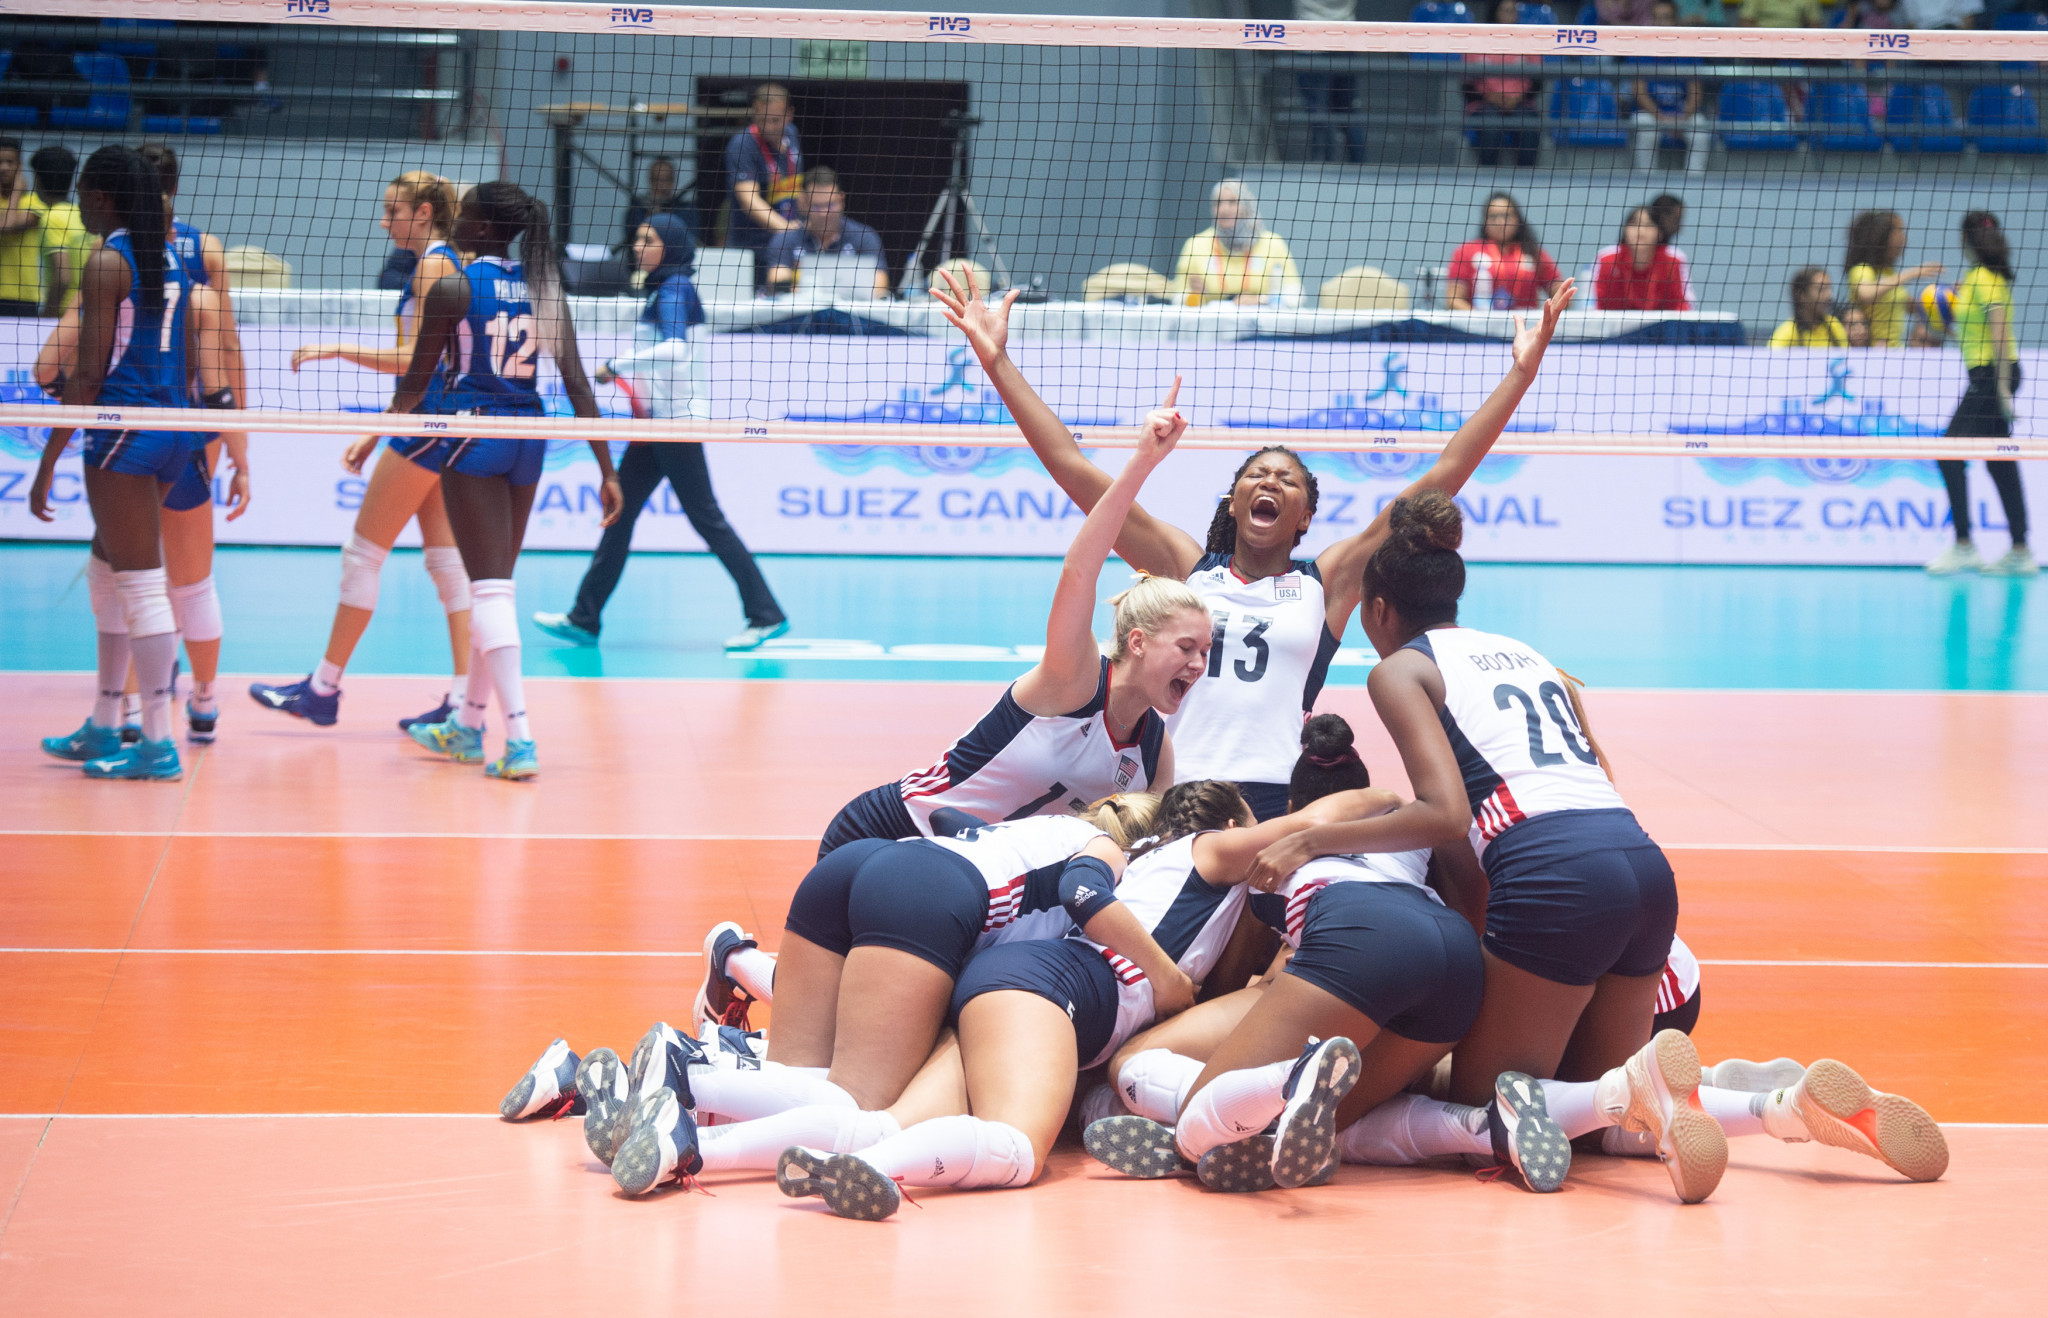 United States beat Italy to earn first gold at FIVB Girls' Under-18 World Championship